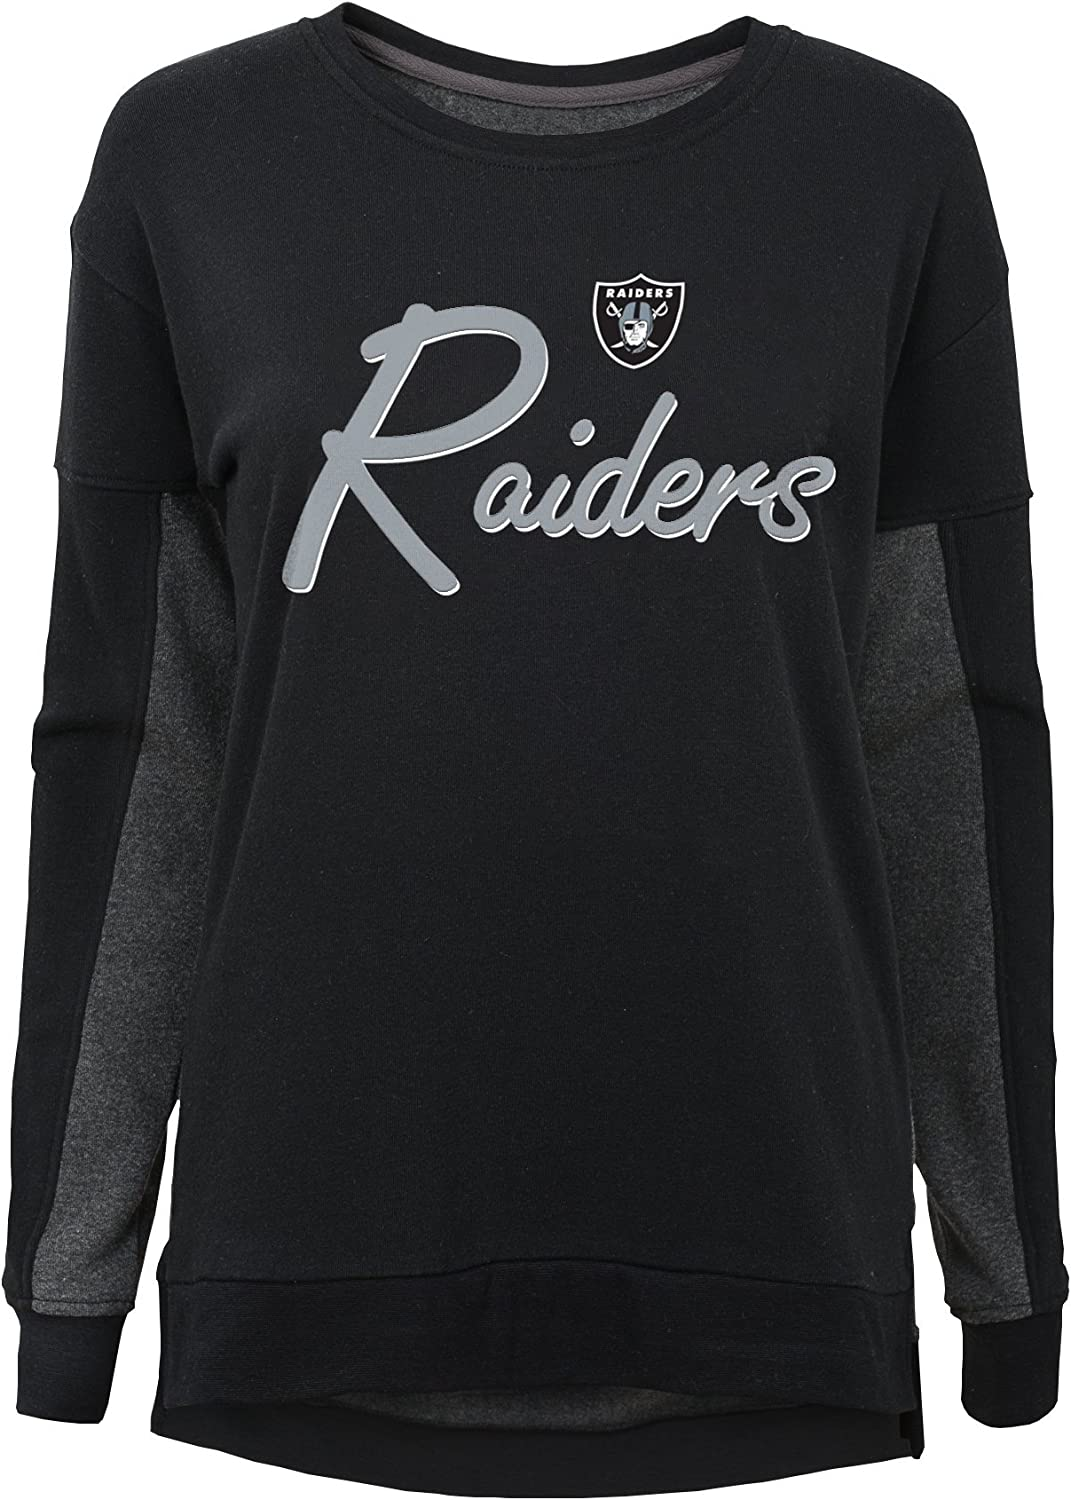 Youth Small NFL Oakland Raiders Youth Girls In the Mix Long Sleeve Crew Neck Top Black 7-8